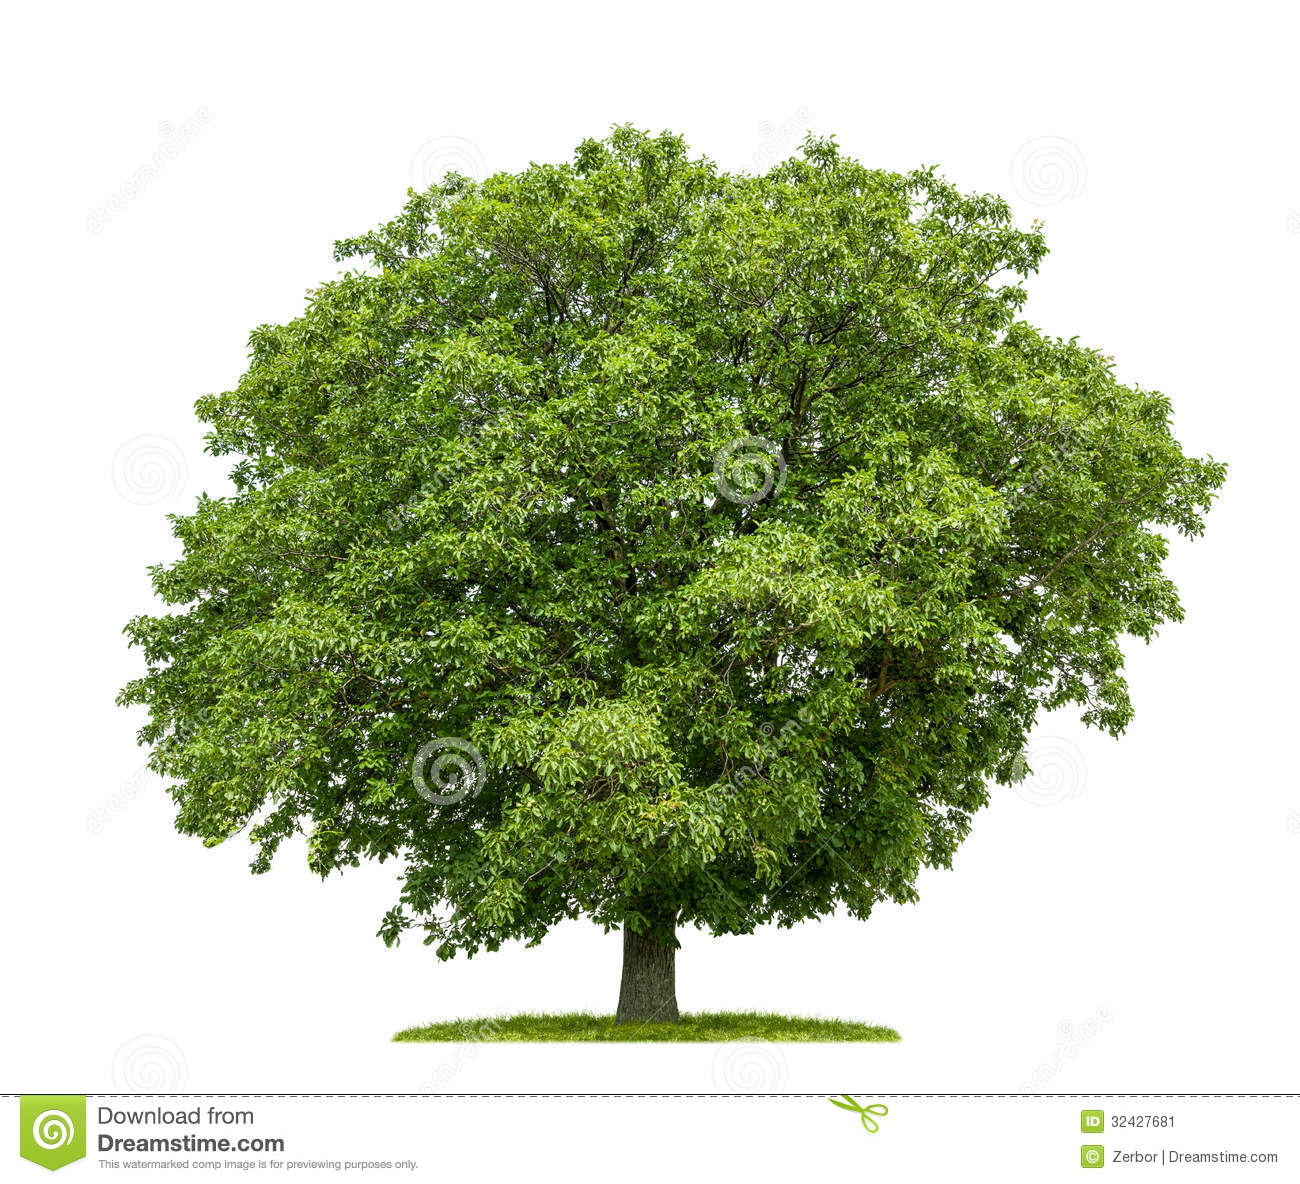 Walnut tree clipart.